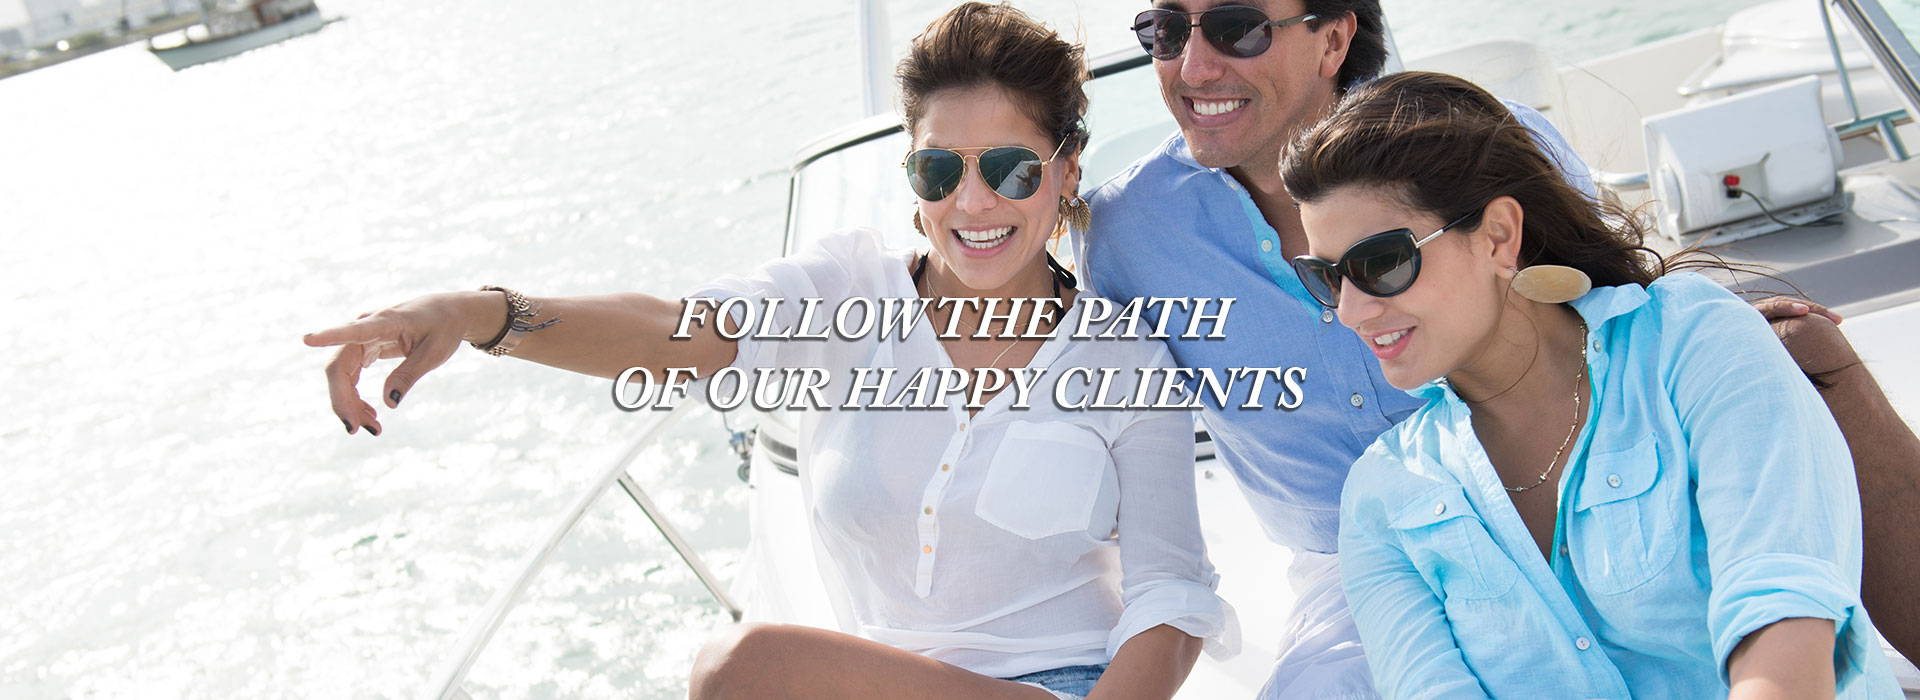 follow the path of our happy clients quote by briny